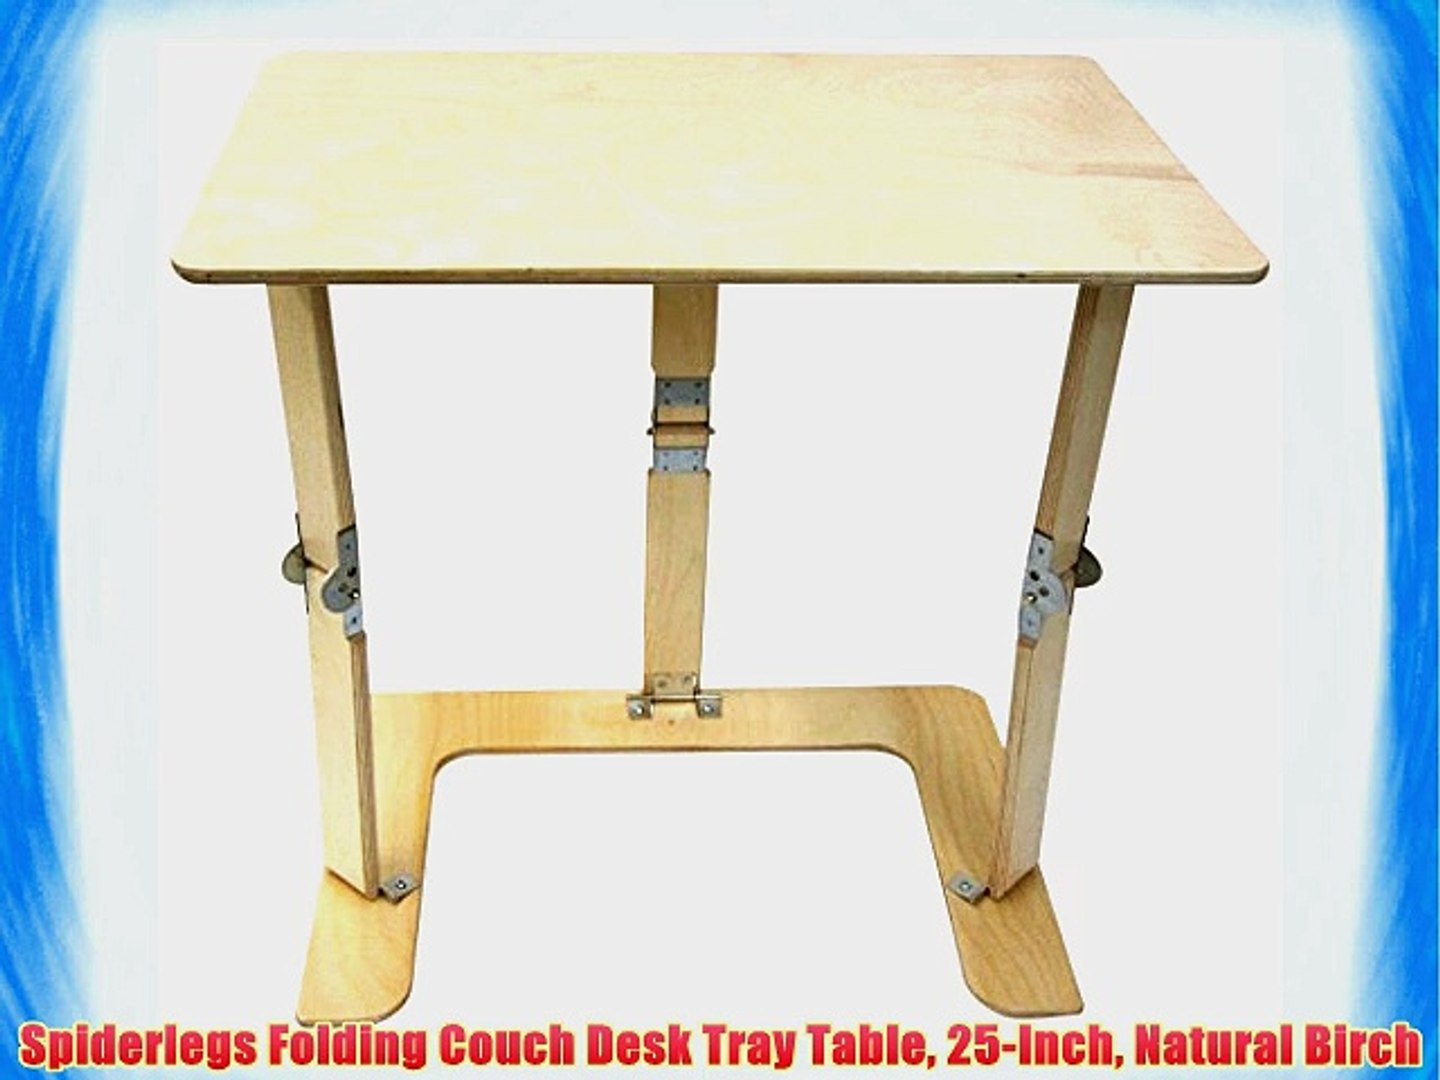 Cool Spiderlegs Folding Couch Desk Tray Table 25 Inch Natural Birch Caraccident5 Cool Chair Designs And Ideas Caraccident5Info